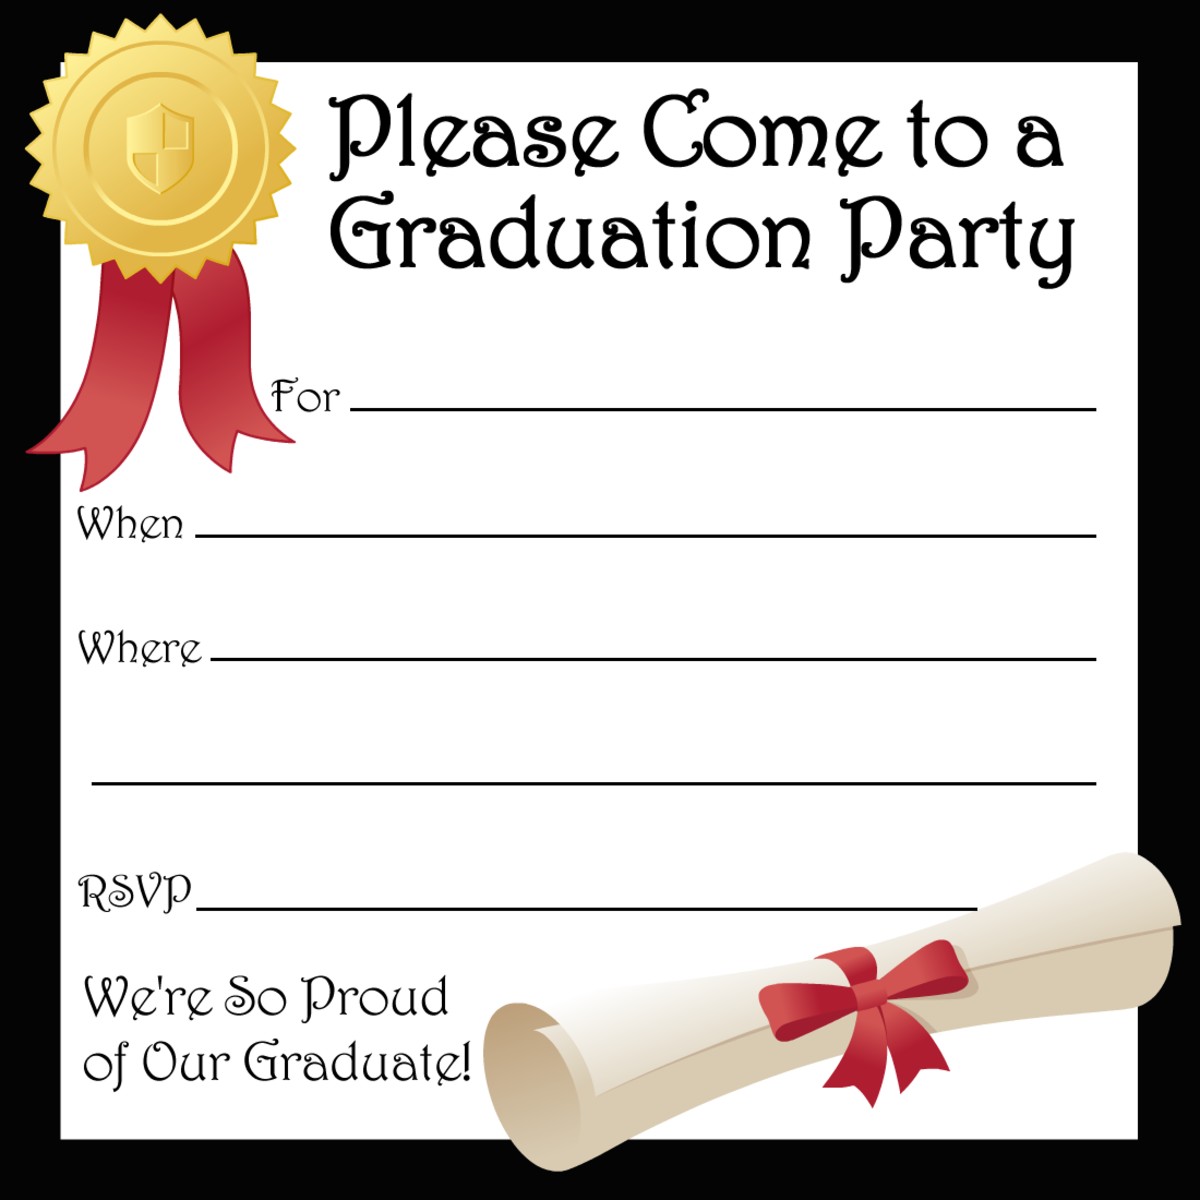 free graduation party invitation templatesFree Printable Party Invitations  Free Invite for a Graduation Party wf4nTN6q